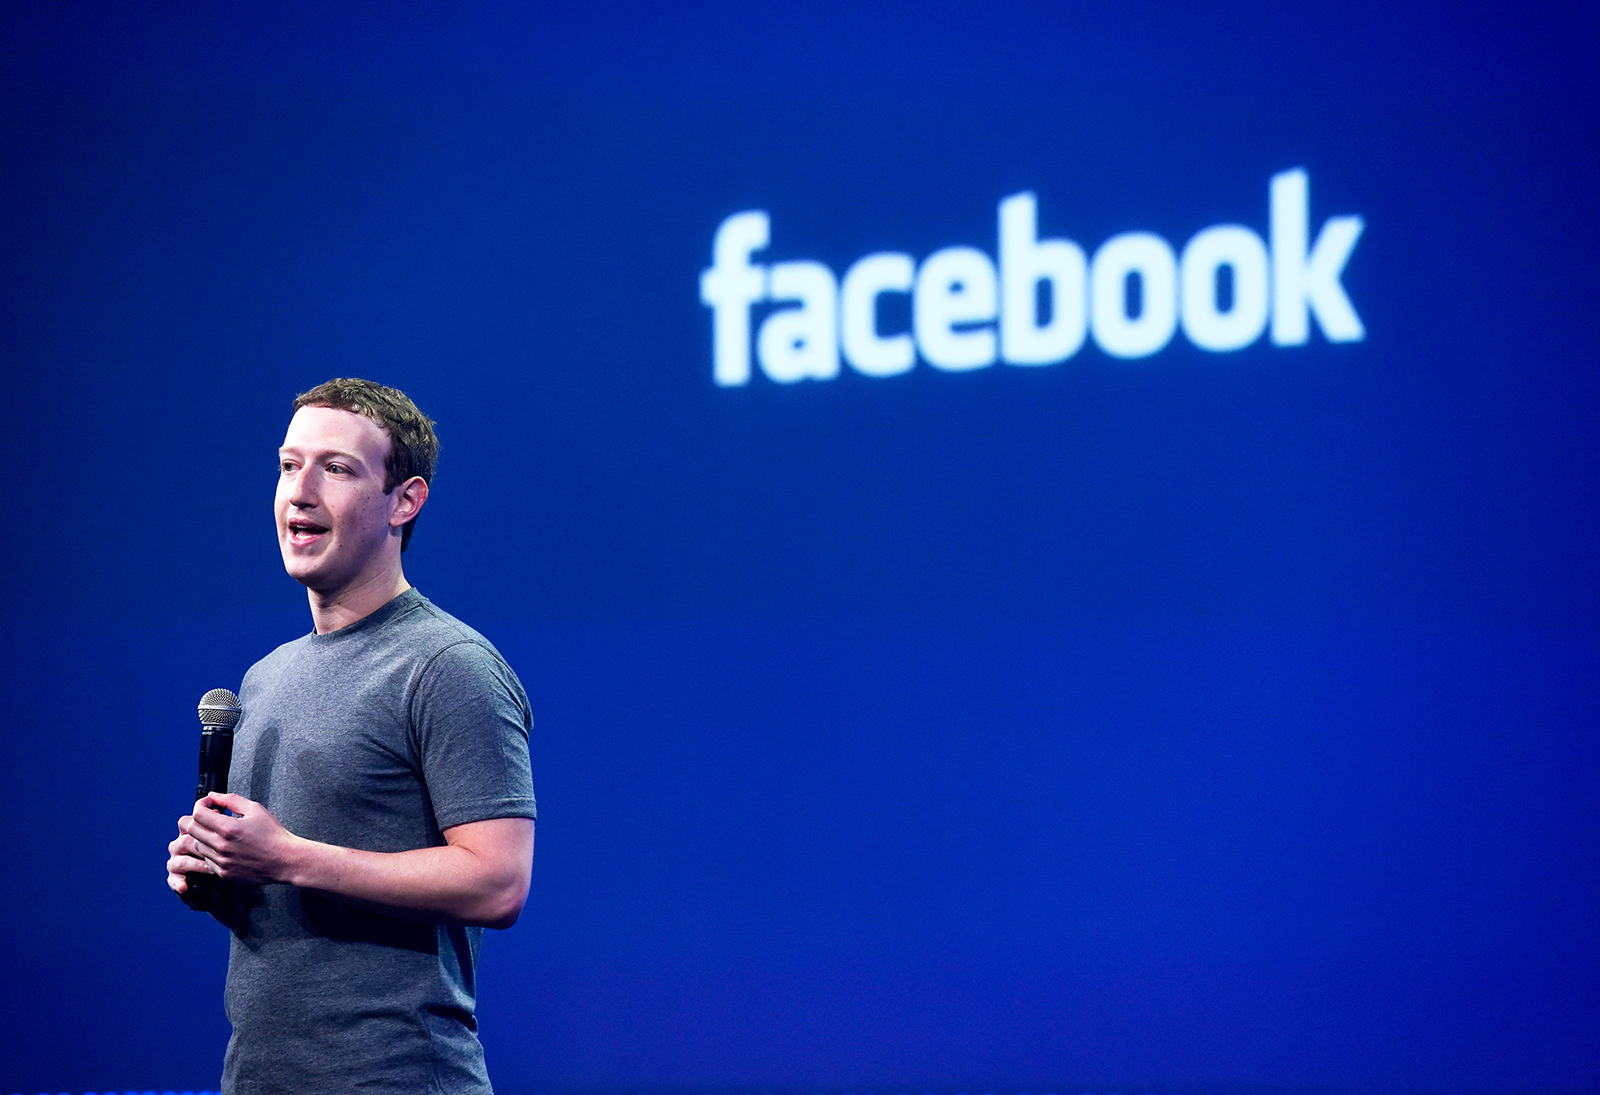 Hacker to live-stream attack on Zuckerberg's Facebook page